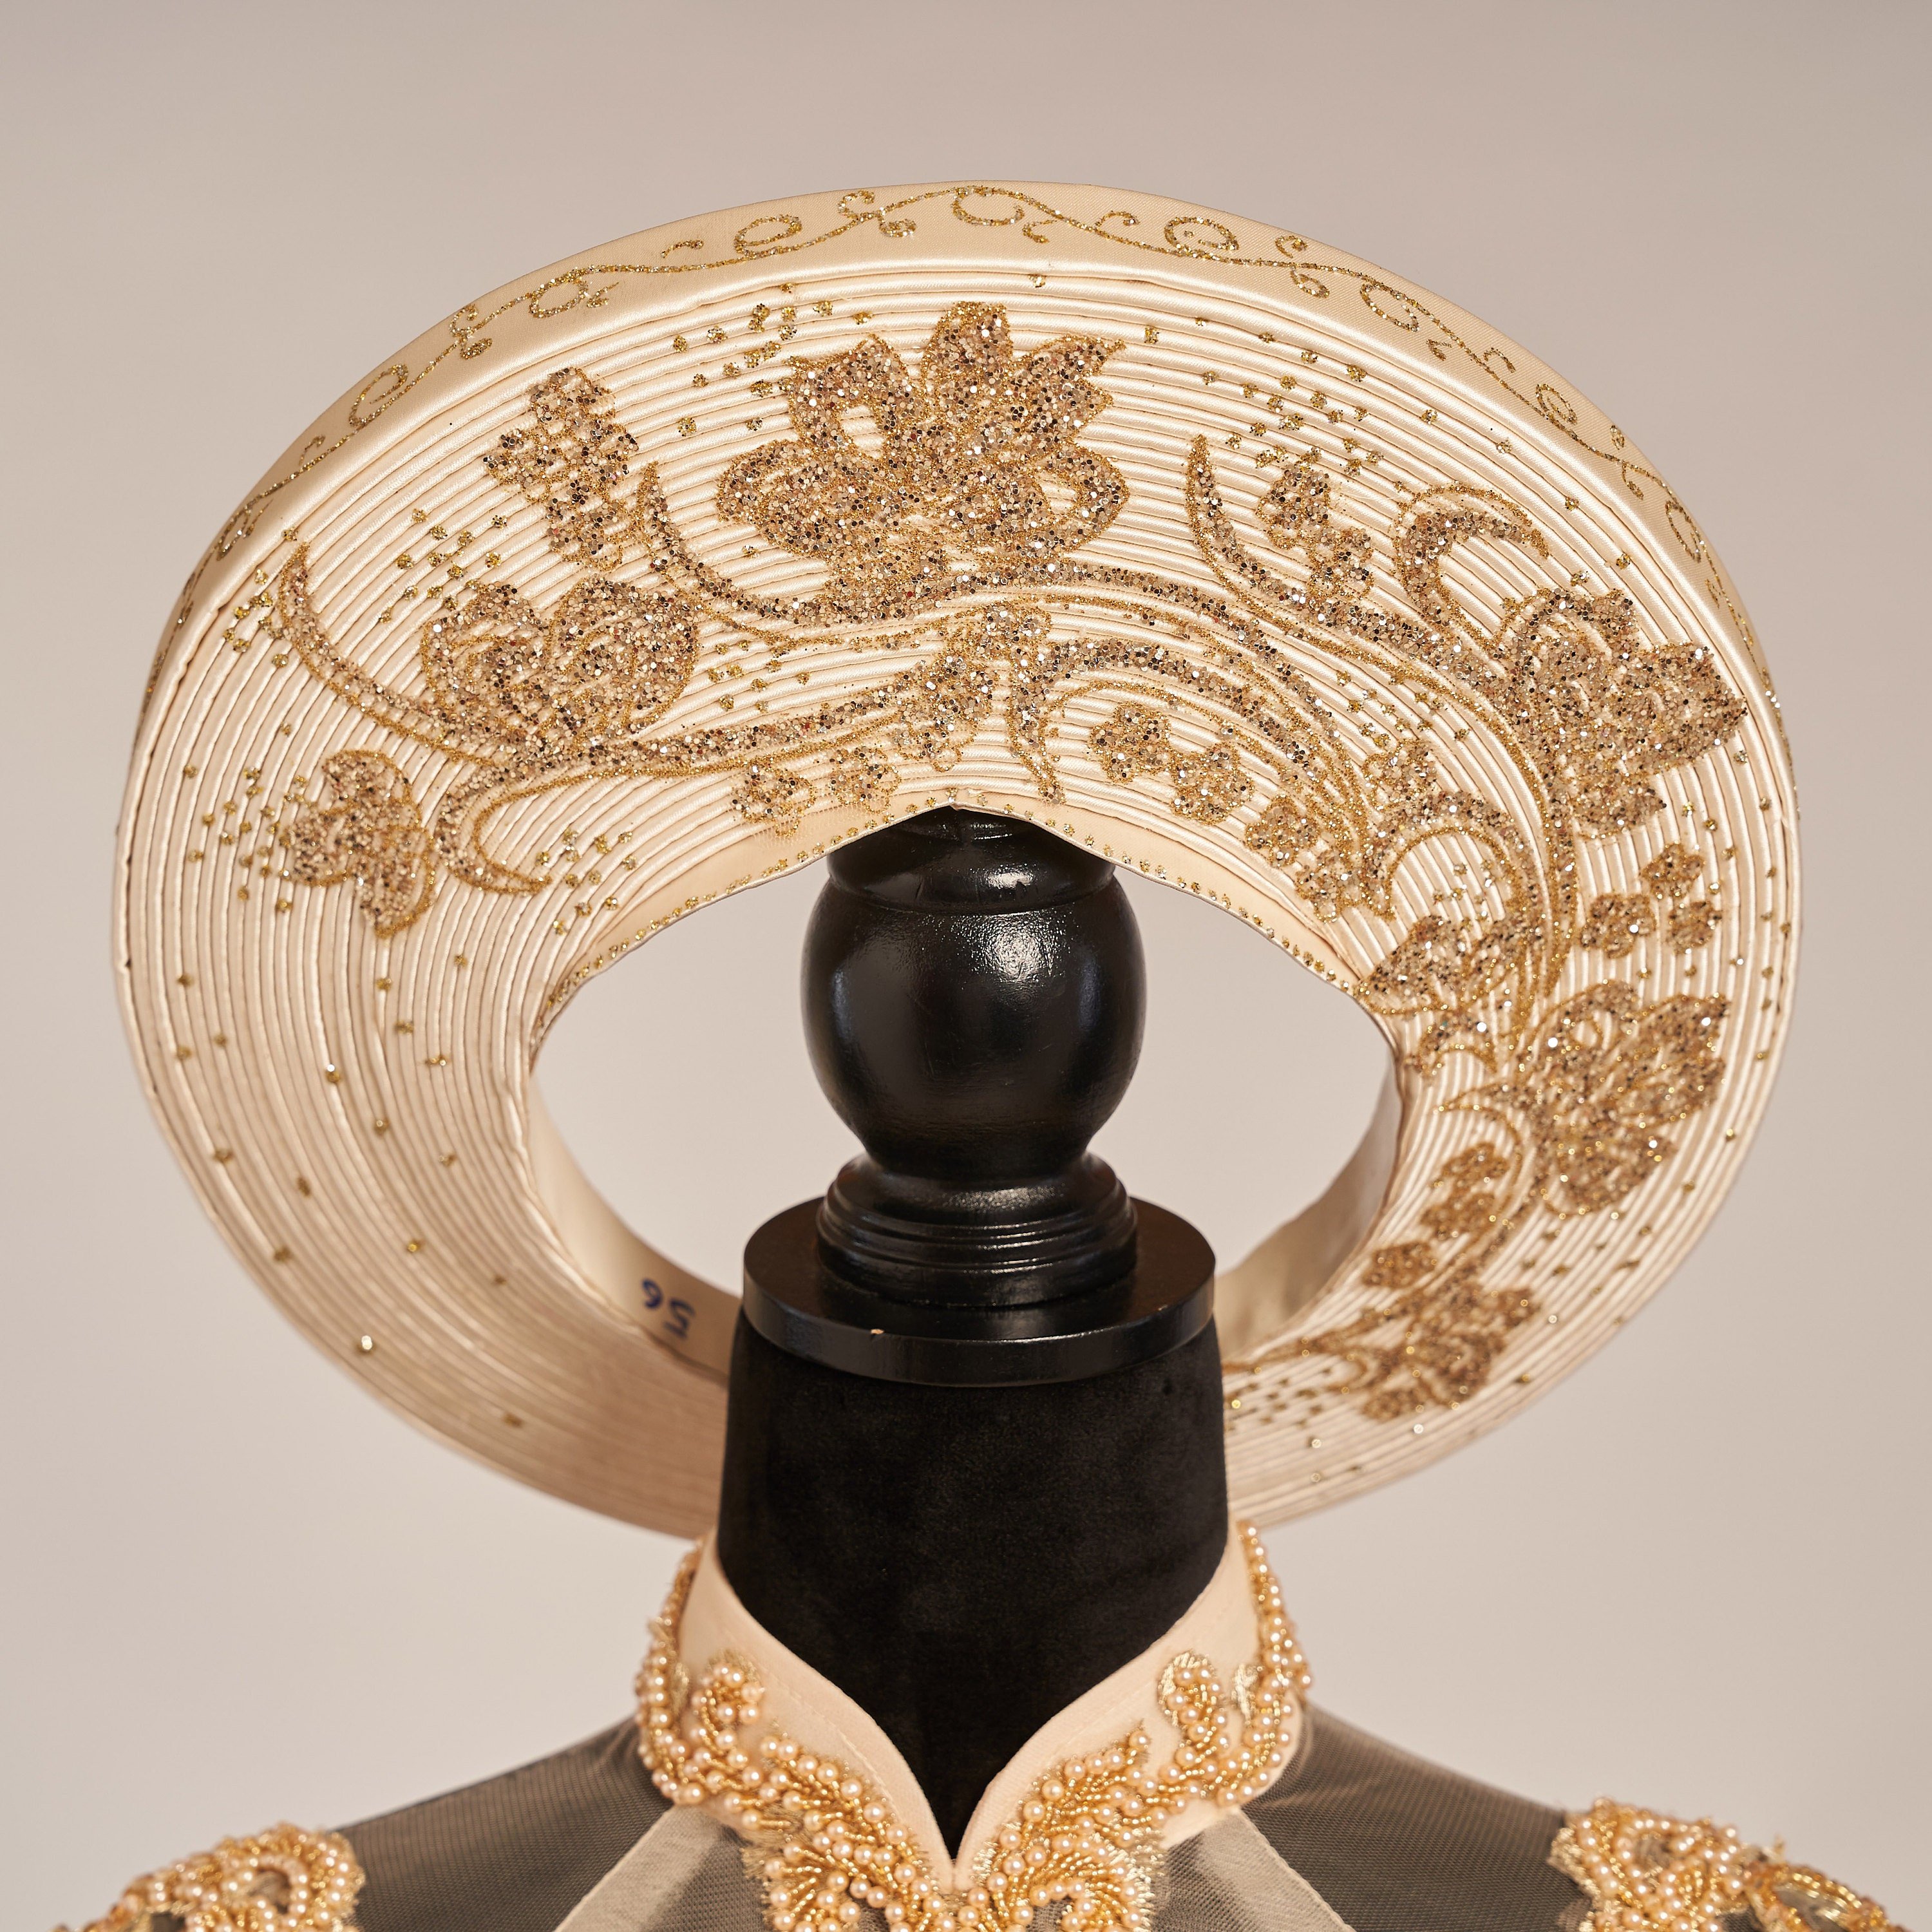 An elaborate headpiece with gold details